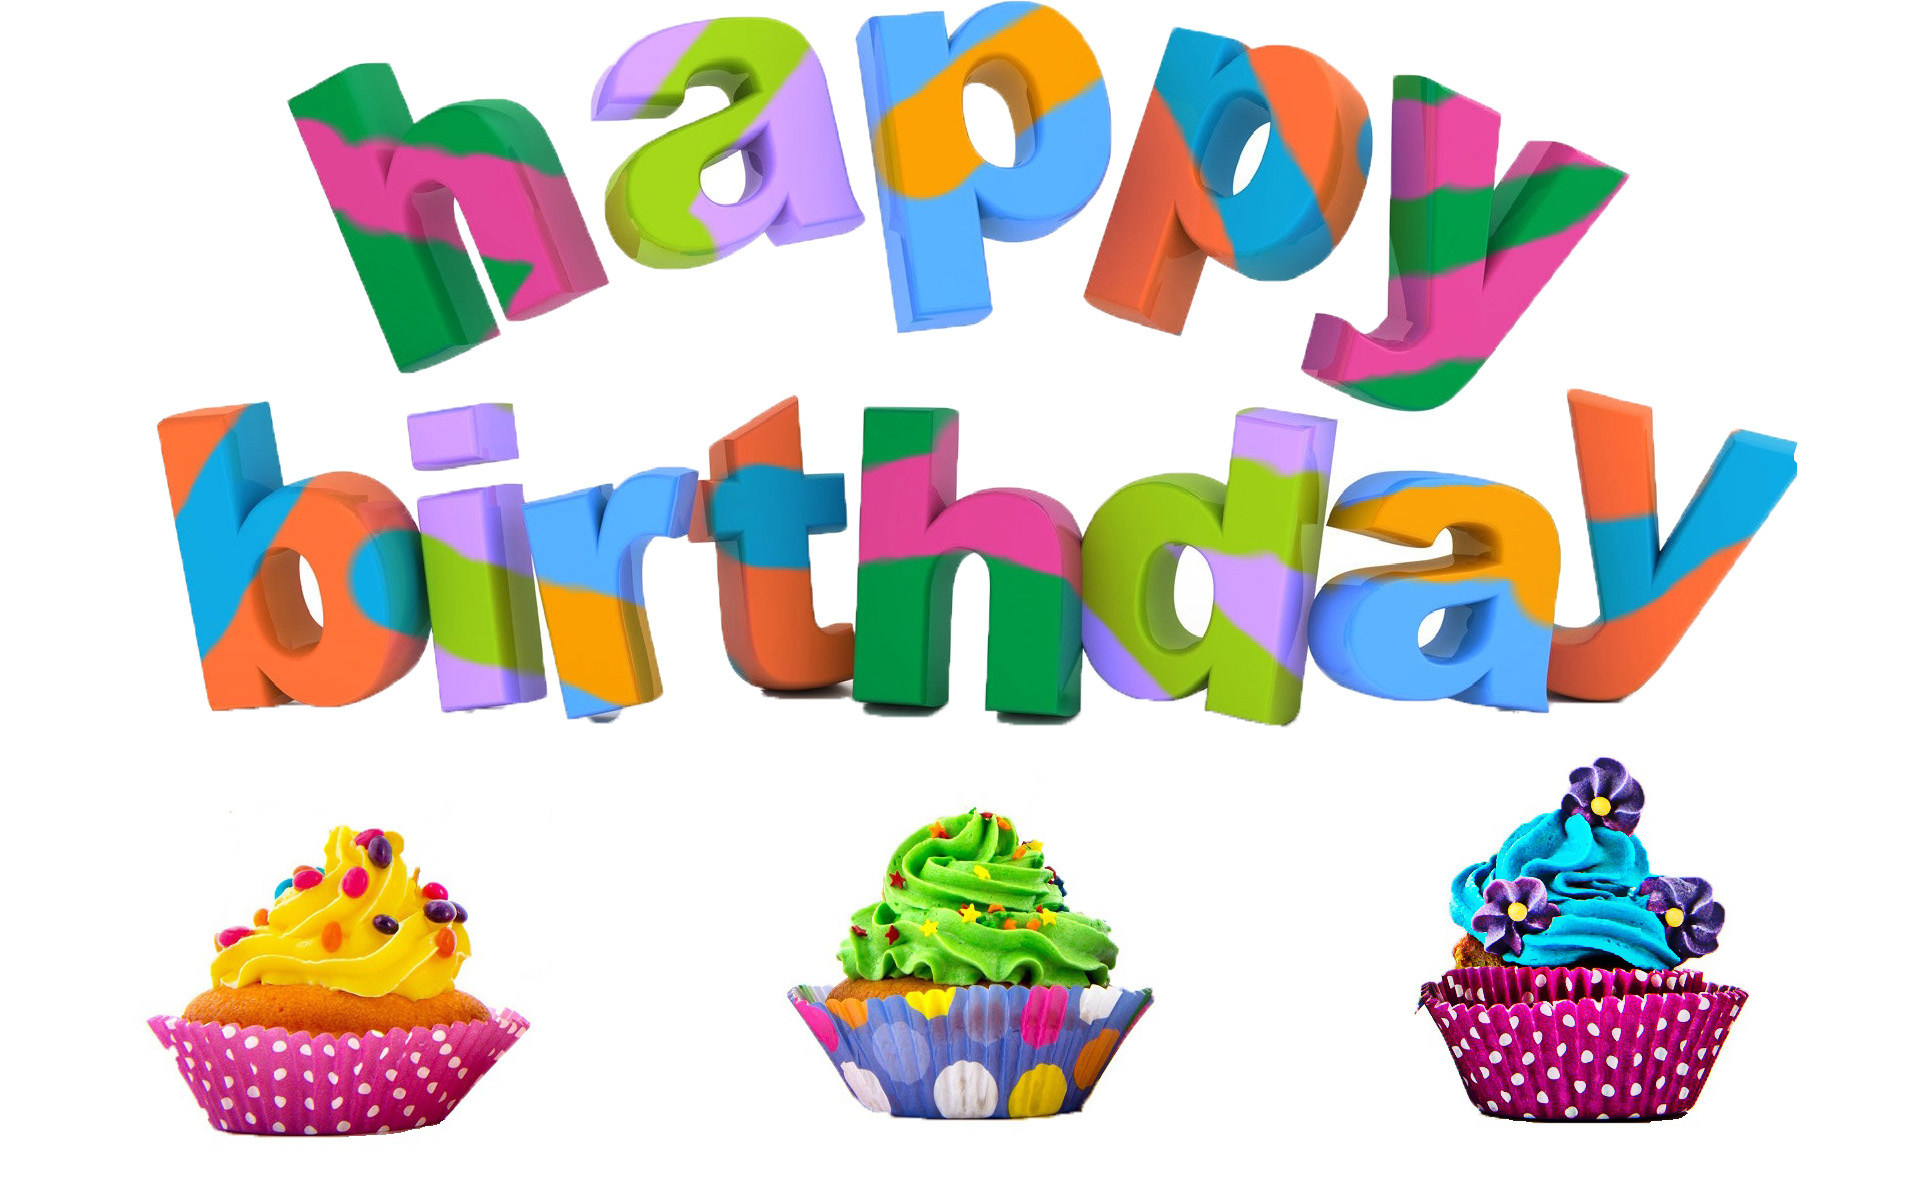 Cute Ribbons Wallpaper 10 Best Happy Birthday Wishes With Images Hug2love